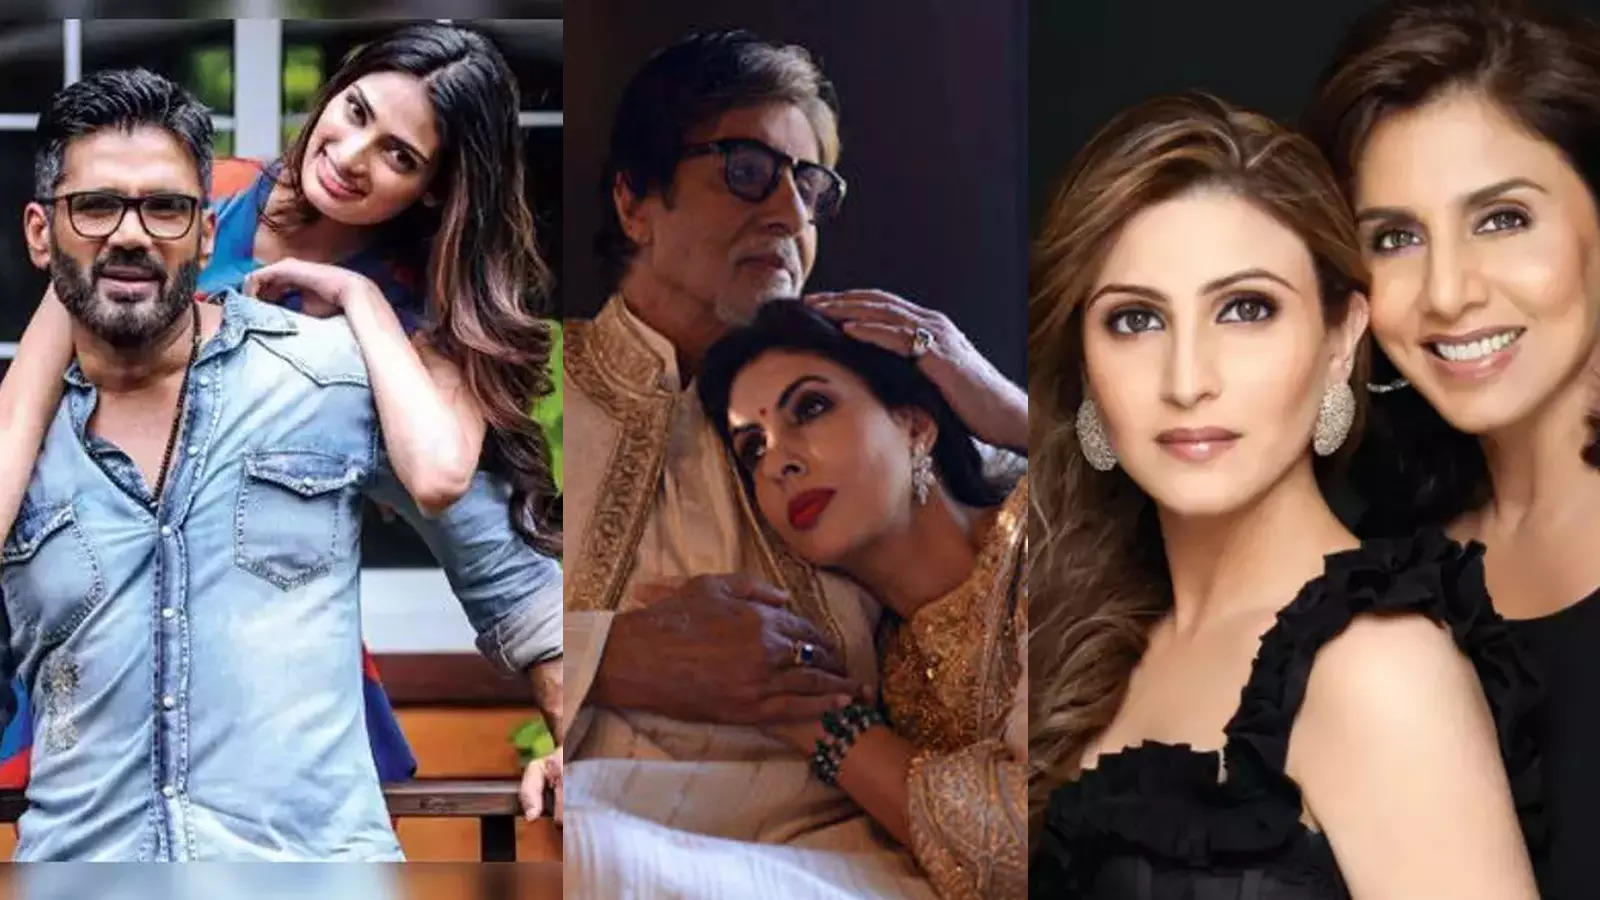 daughters-day-from-amitabh-bachchan-to-suniel-shetty-to-neetu-kapoor-stars-share-heartfelt-post-for-their-daughters